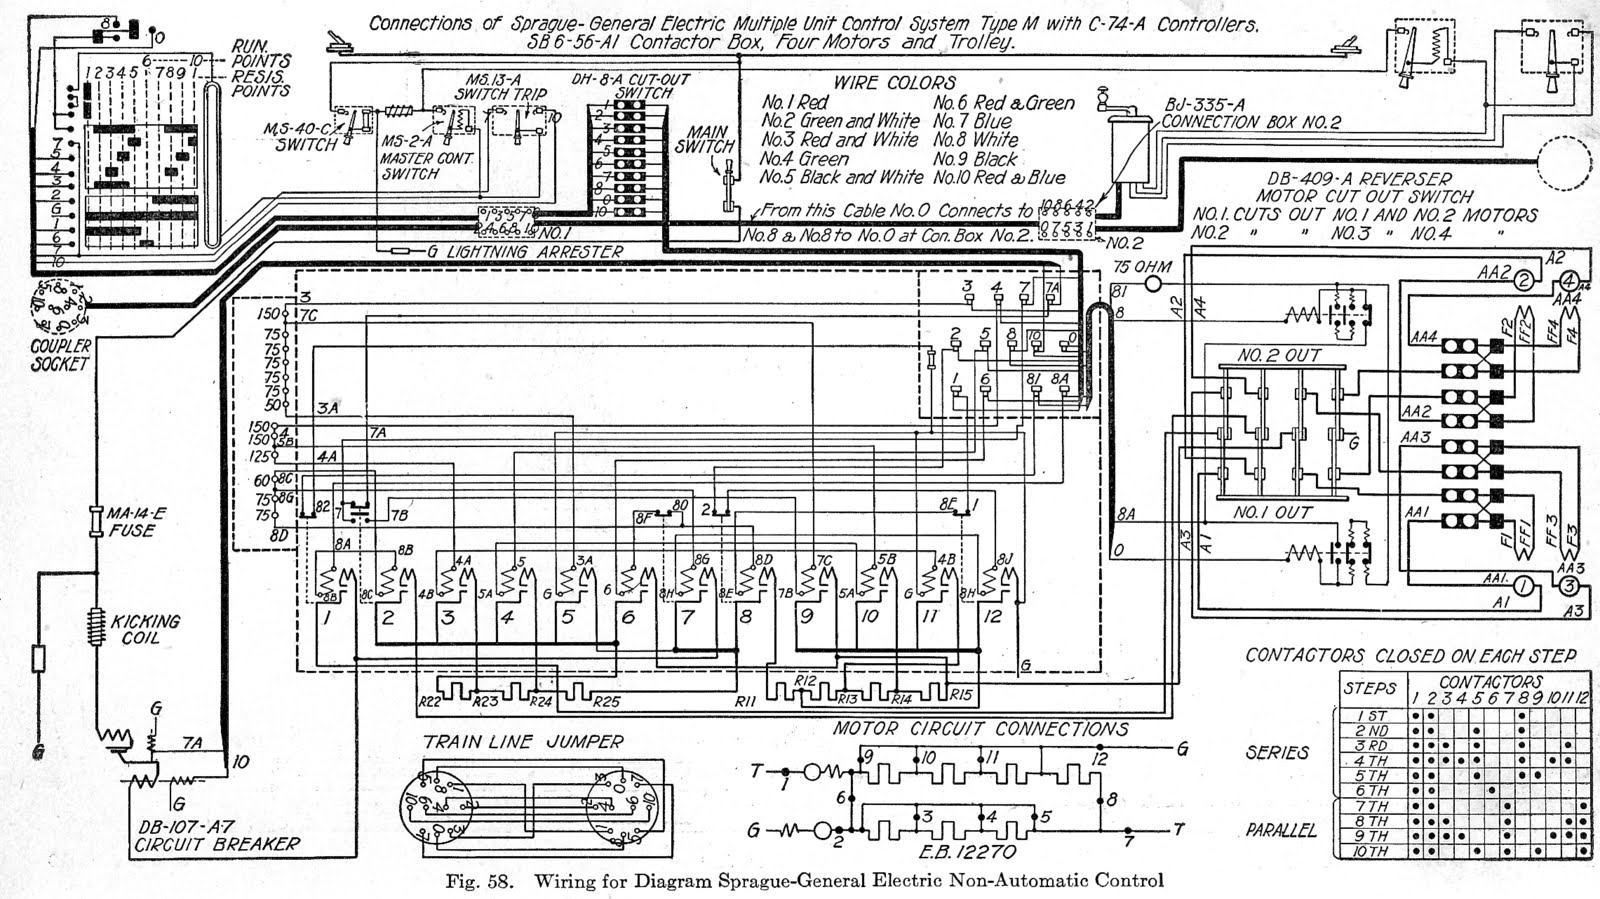 Citroen Relay 3 Wiring Diagram - Wiring Diagrams DataUssel